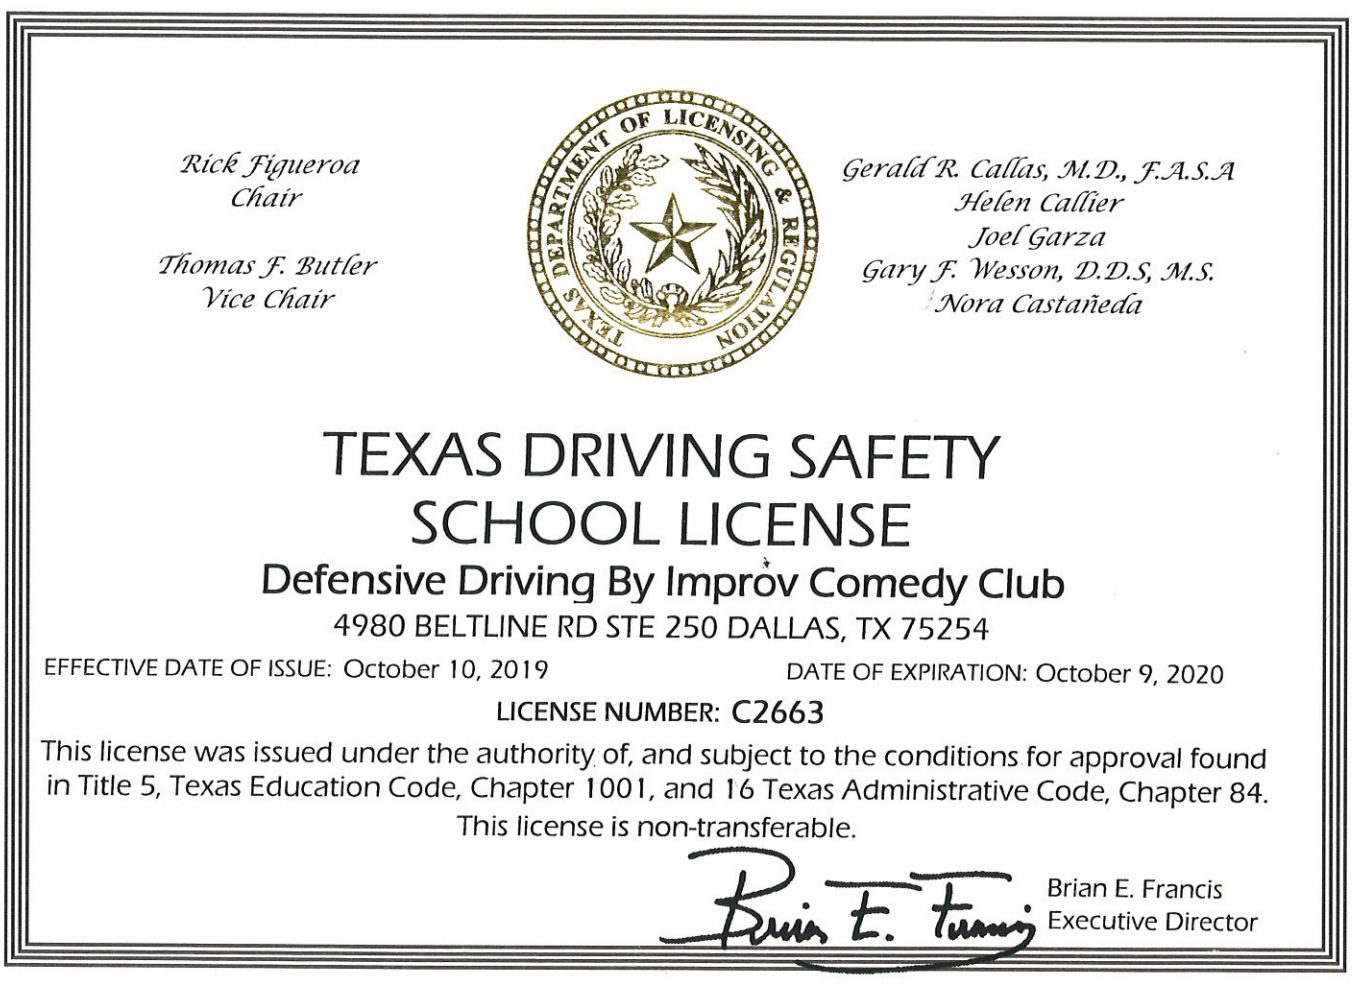 coupon for defensive driving course